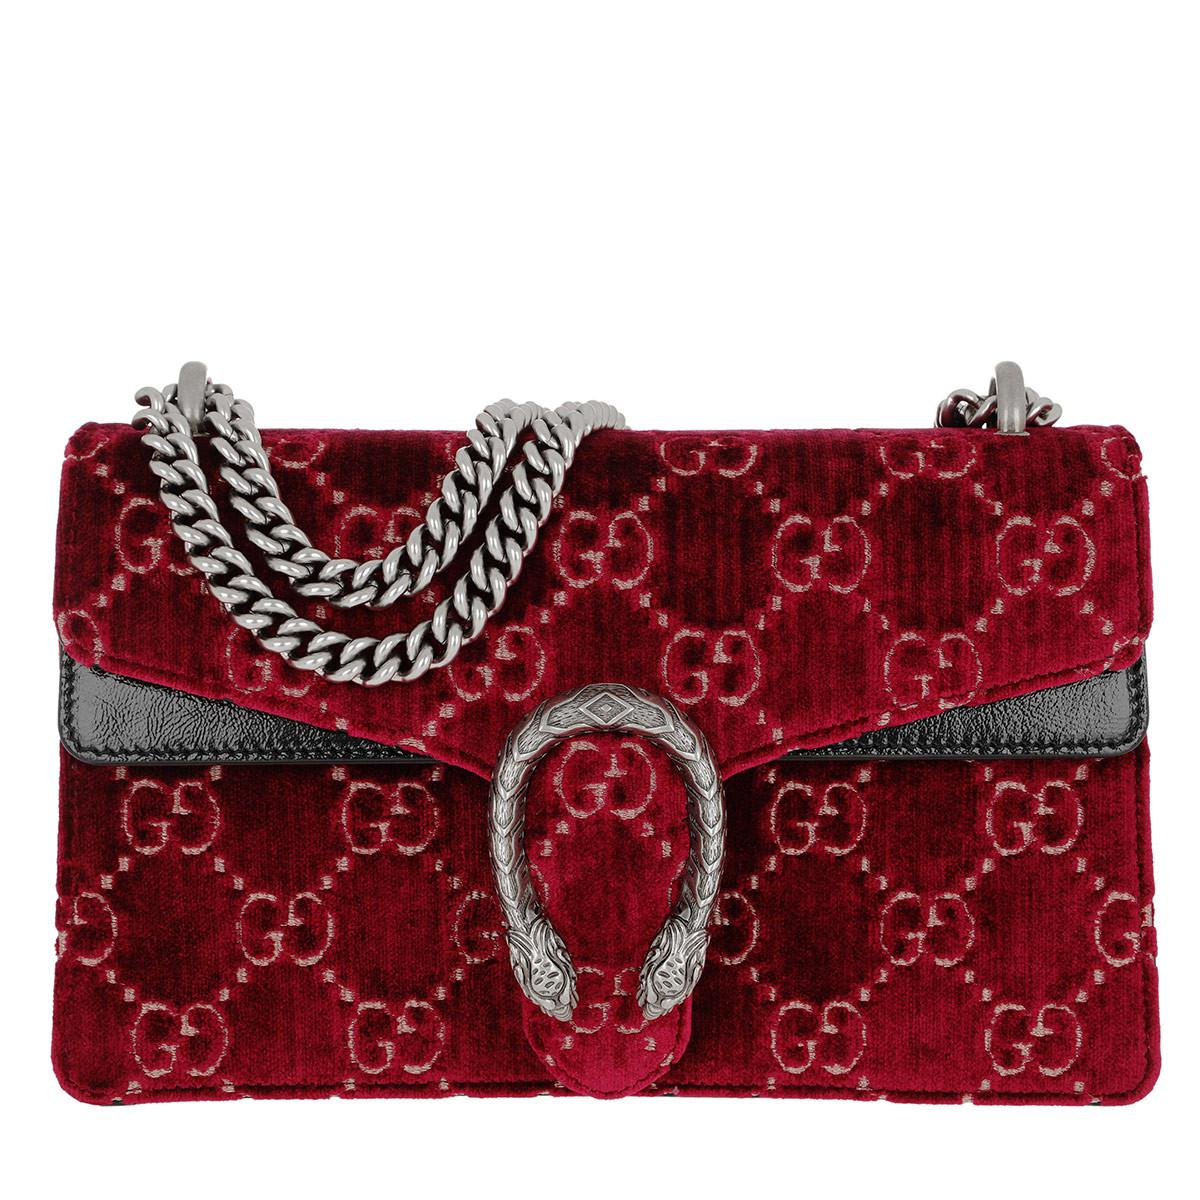 d292c628934b Gucci Dionysus GG Small Shoulder Bag Velvet Red in Red - Lyst